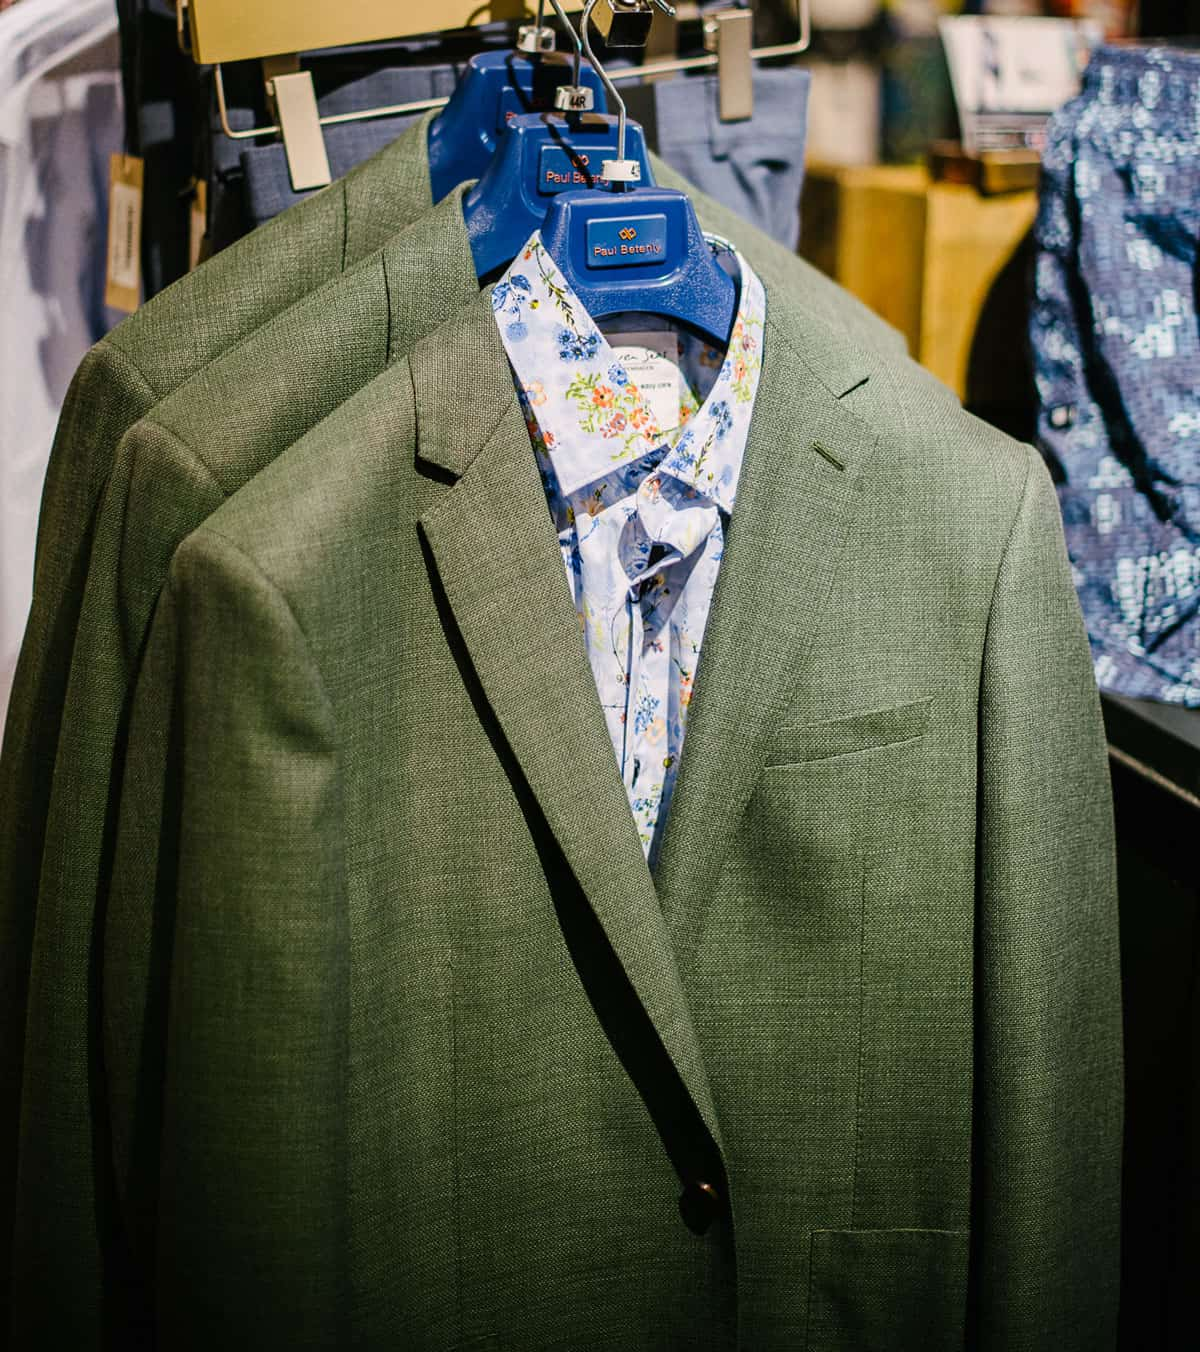 A green sport coat over a dress shirt on a rack of items in-store.